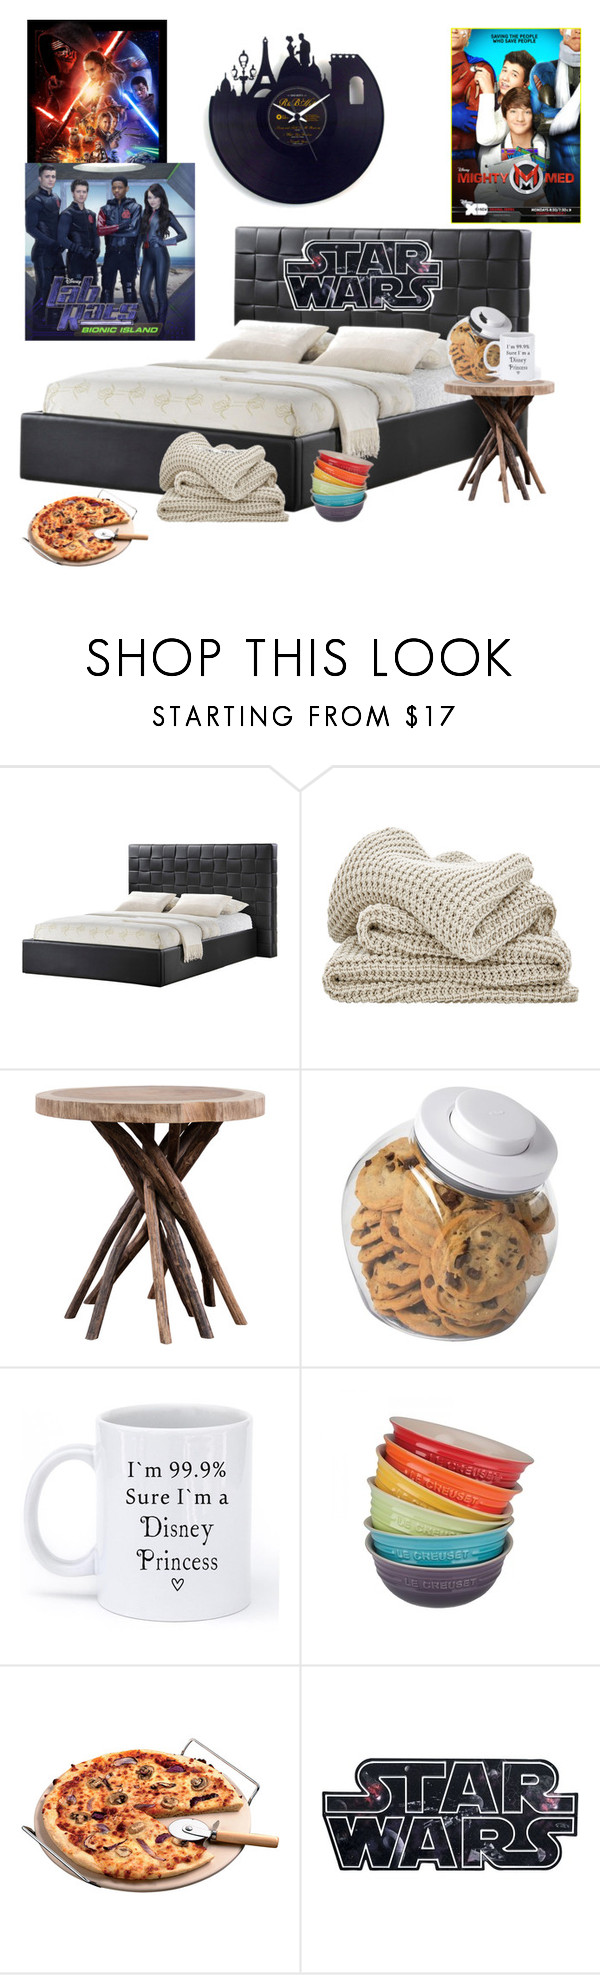 """""""Friki's home"""" by thebionicmutantkickingirl ❤ liked on Polyvore featuring interior, interiors, interior design, home, home decor, interior decorating, OXO, Disney and Le Creuset"""